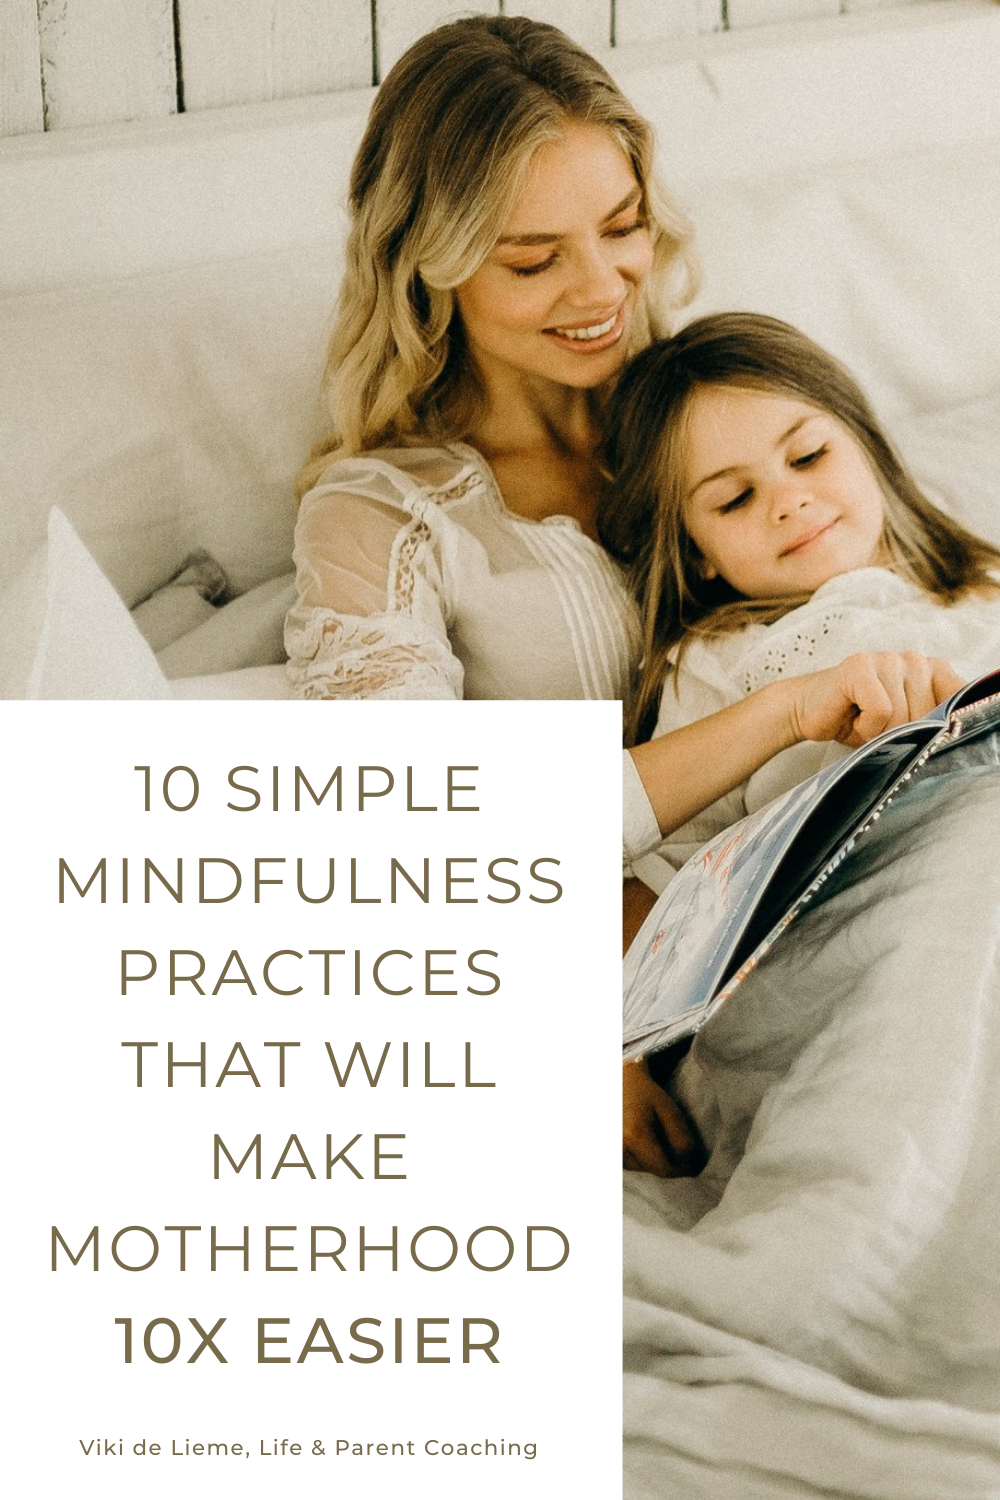 With these simple Mindfulness practices, you will tern motherhood and your parenting experience into what you've always wanted it to be - calm, peaceful, mutually respecting, loving, and warm. All you need to do is slightly challenge your perception #howtobondwithyourkids #bondwithyourkids #reconnectwithkids #bondingwithdaughter #mothersonbonding #bondingwithfamily #familylife #raisinghappykids #momadvice #hacksforbusymoms #workingmom #momguilt #positiveparenting #Mindfulparenting #mindfulness